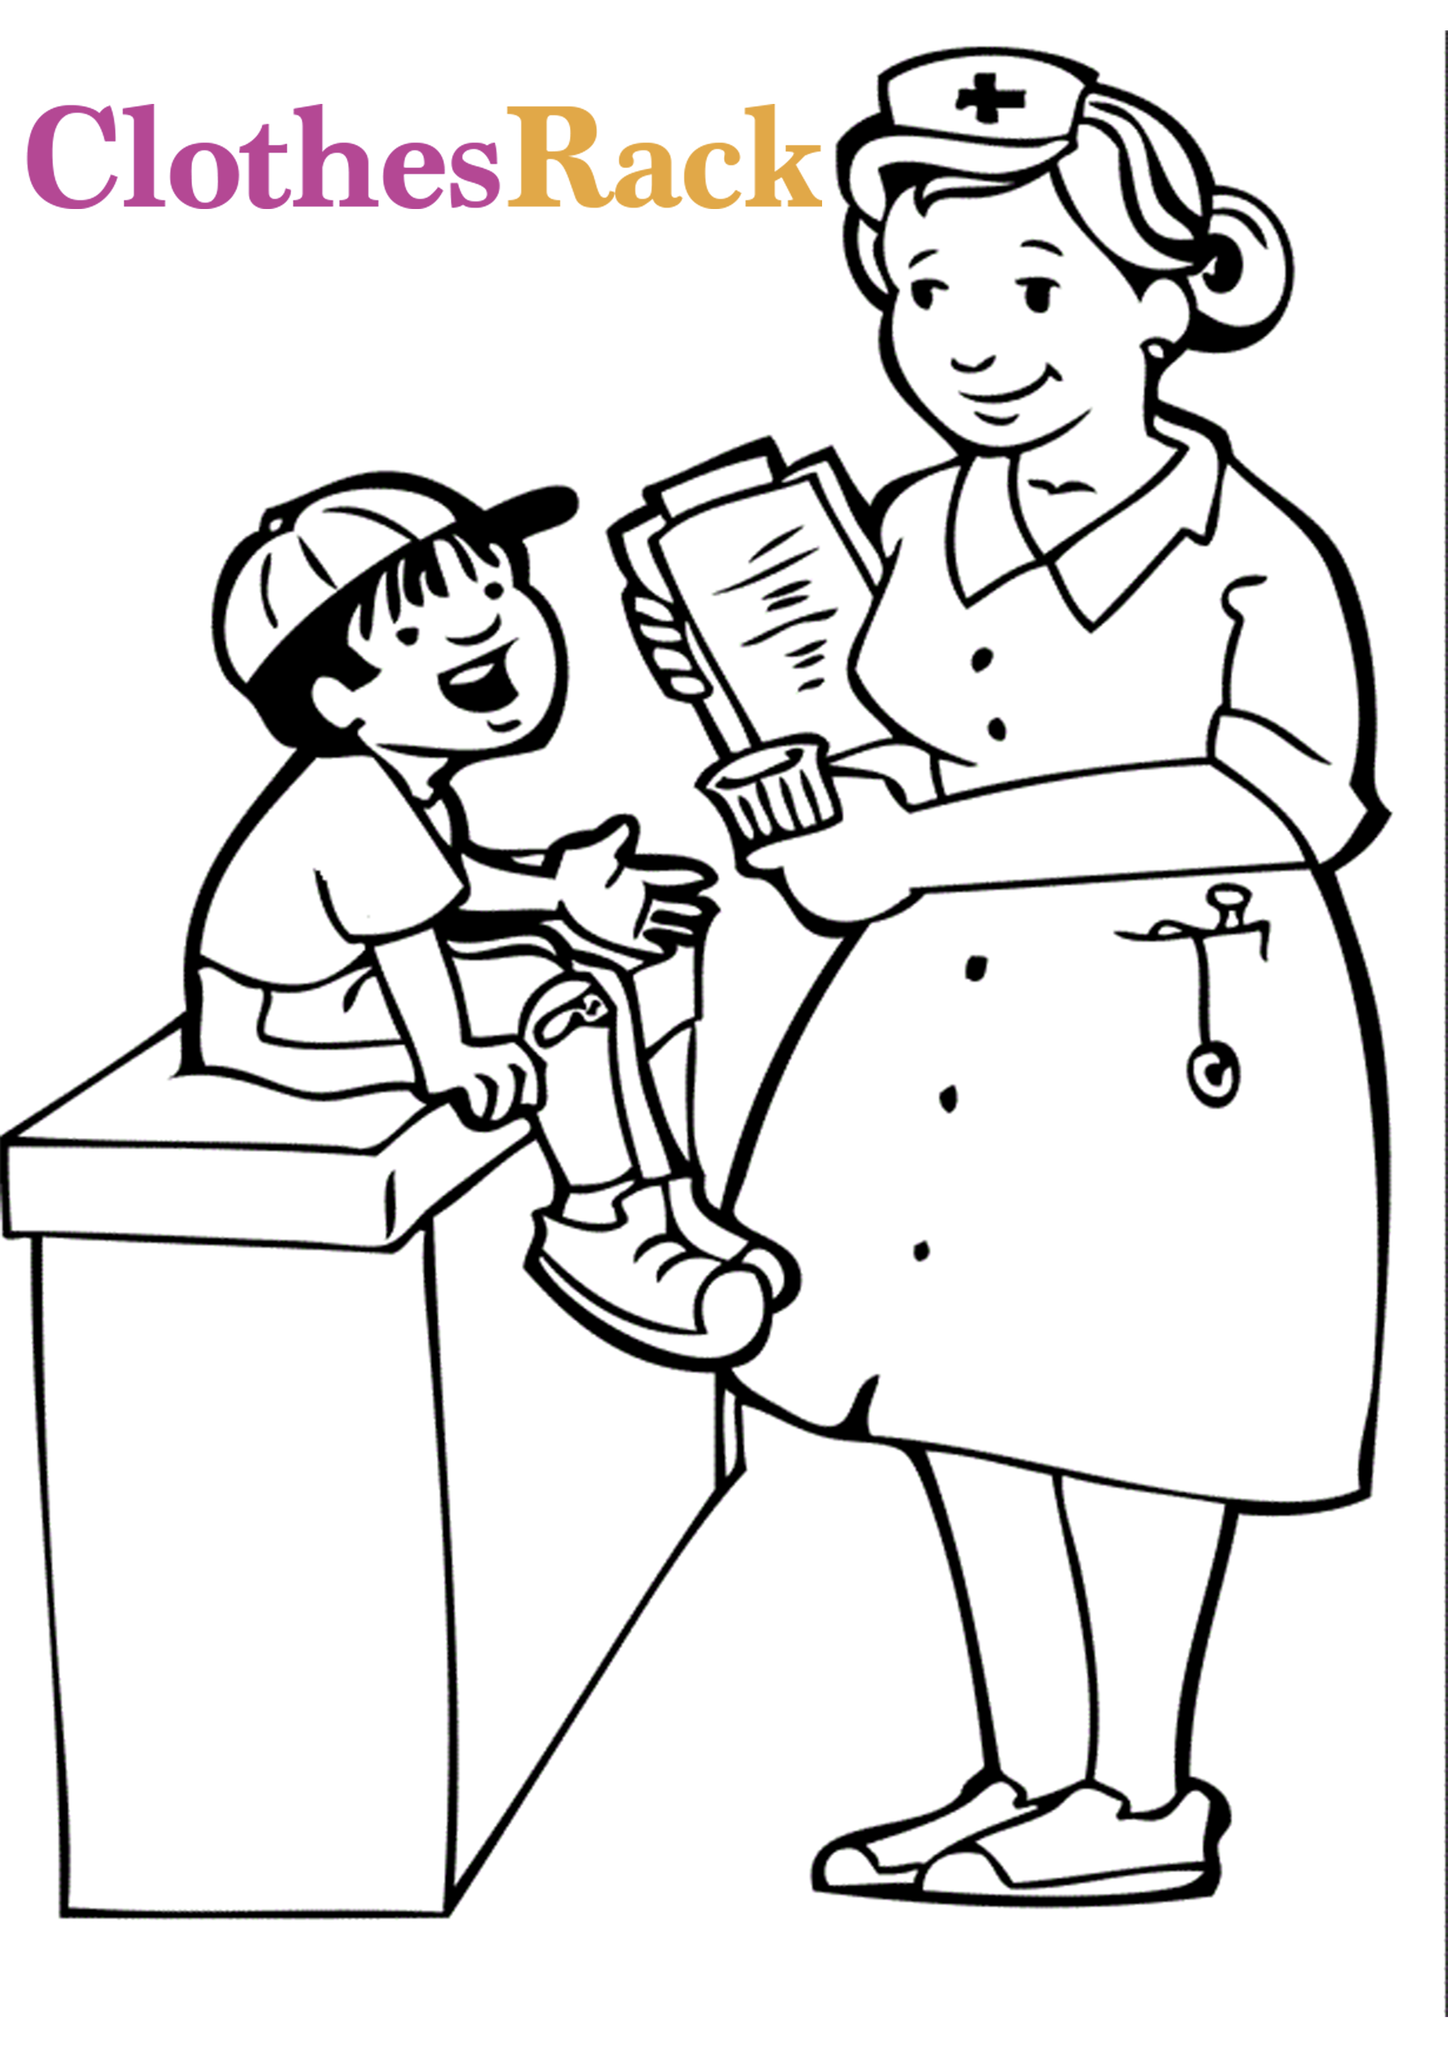 Free Medical Colouring Pages For Kids